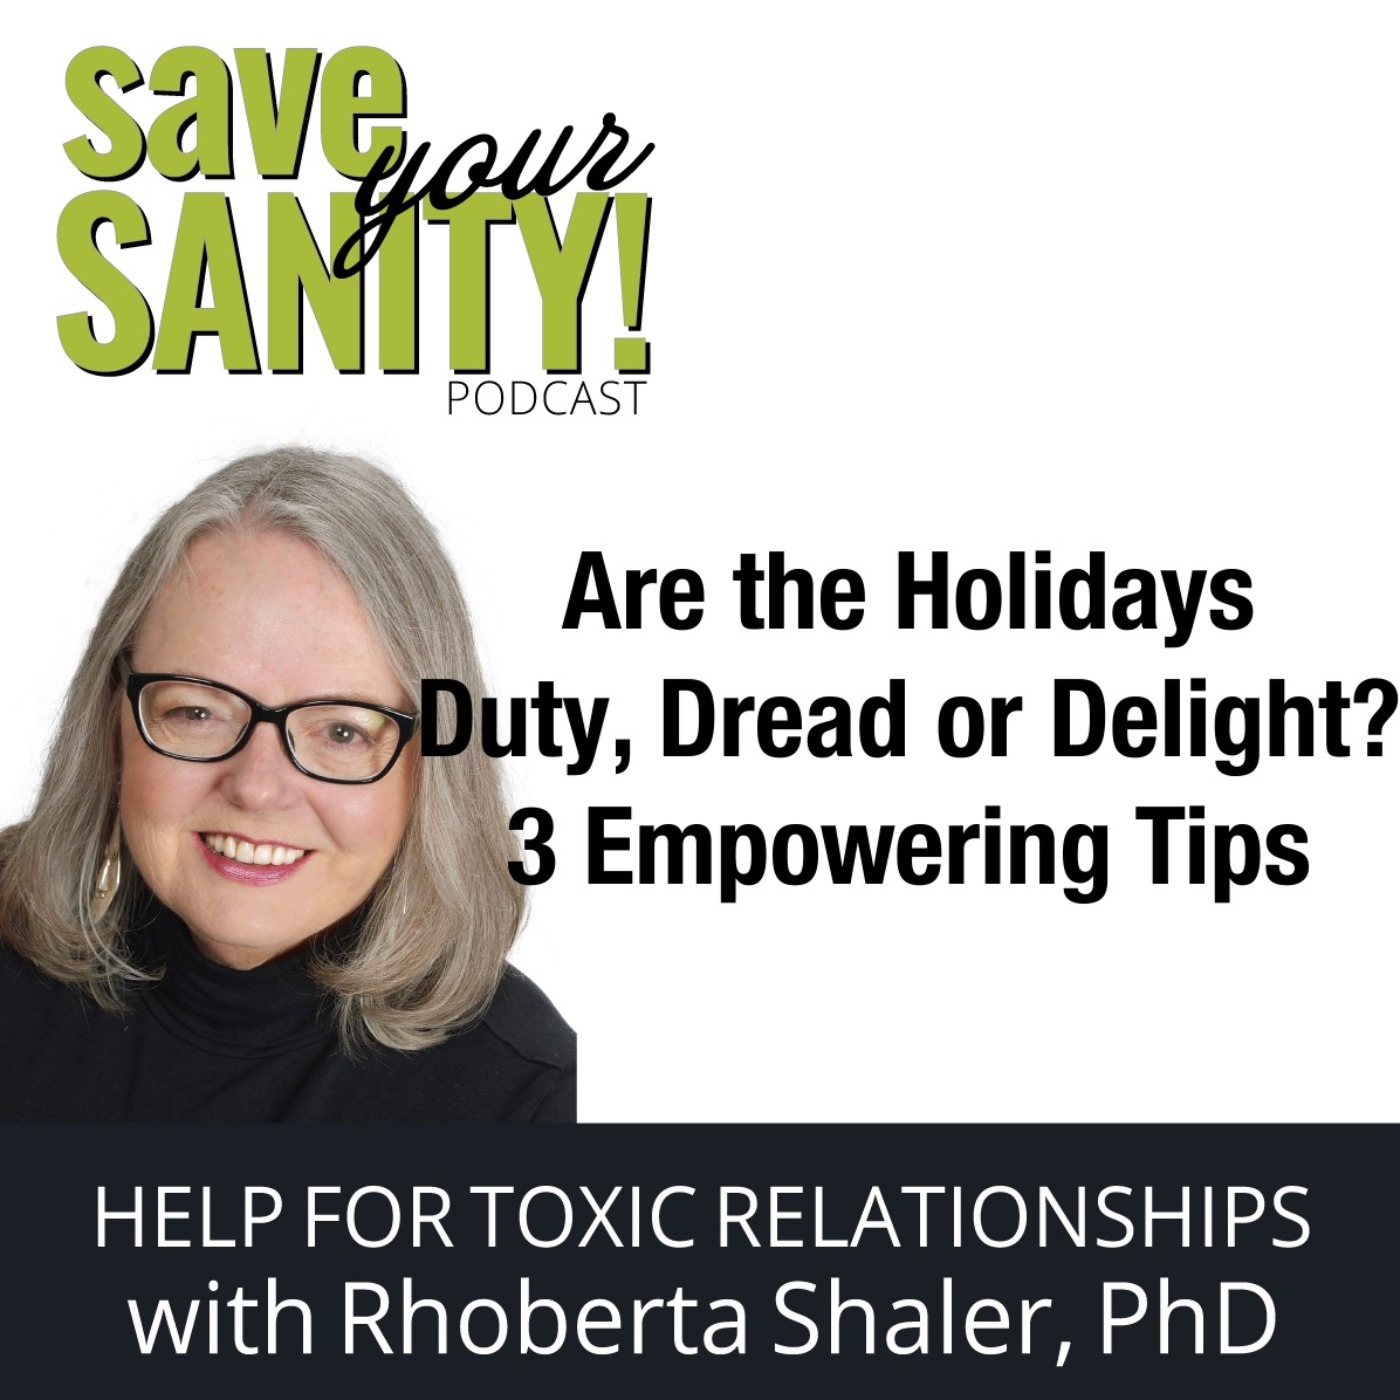 Are the Holidays Duty, Dread or Delight? 3 Empowering Tips -  Dr. Rhoberta Shaler